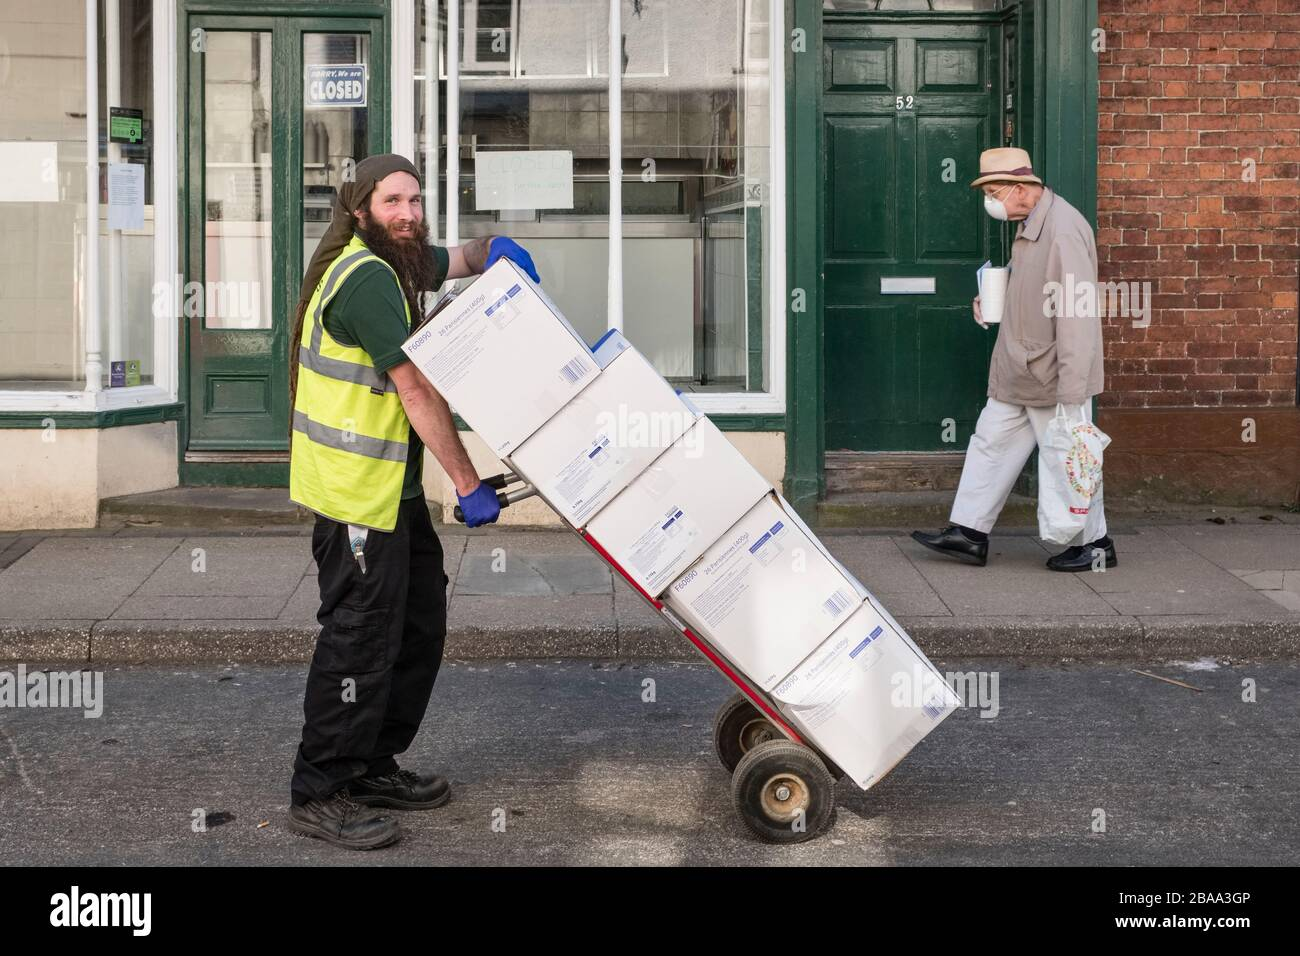 an-urgent-bread-delivery-during-the-covid-19-outbreak-in-the-small-welsh-border-town-of-presteigne-powys-wales-uk-2BAA3GP.jpg